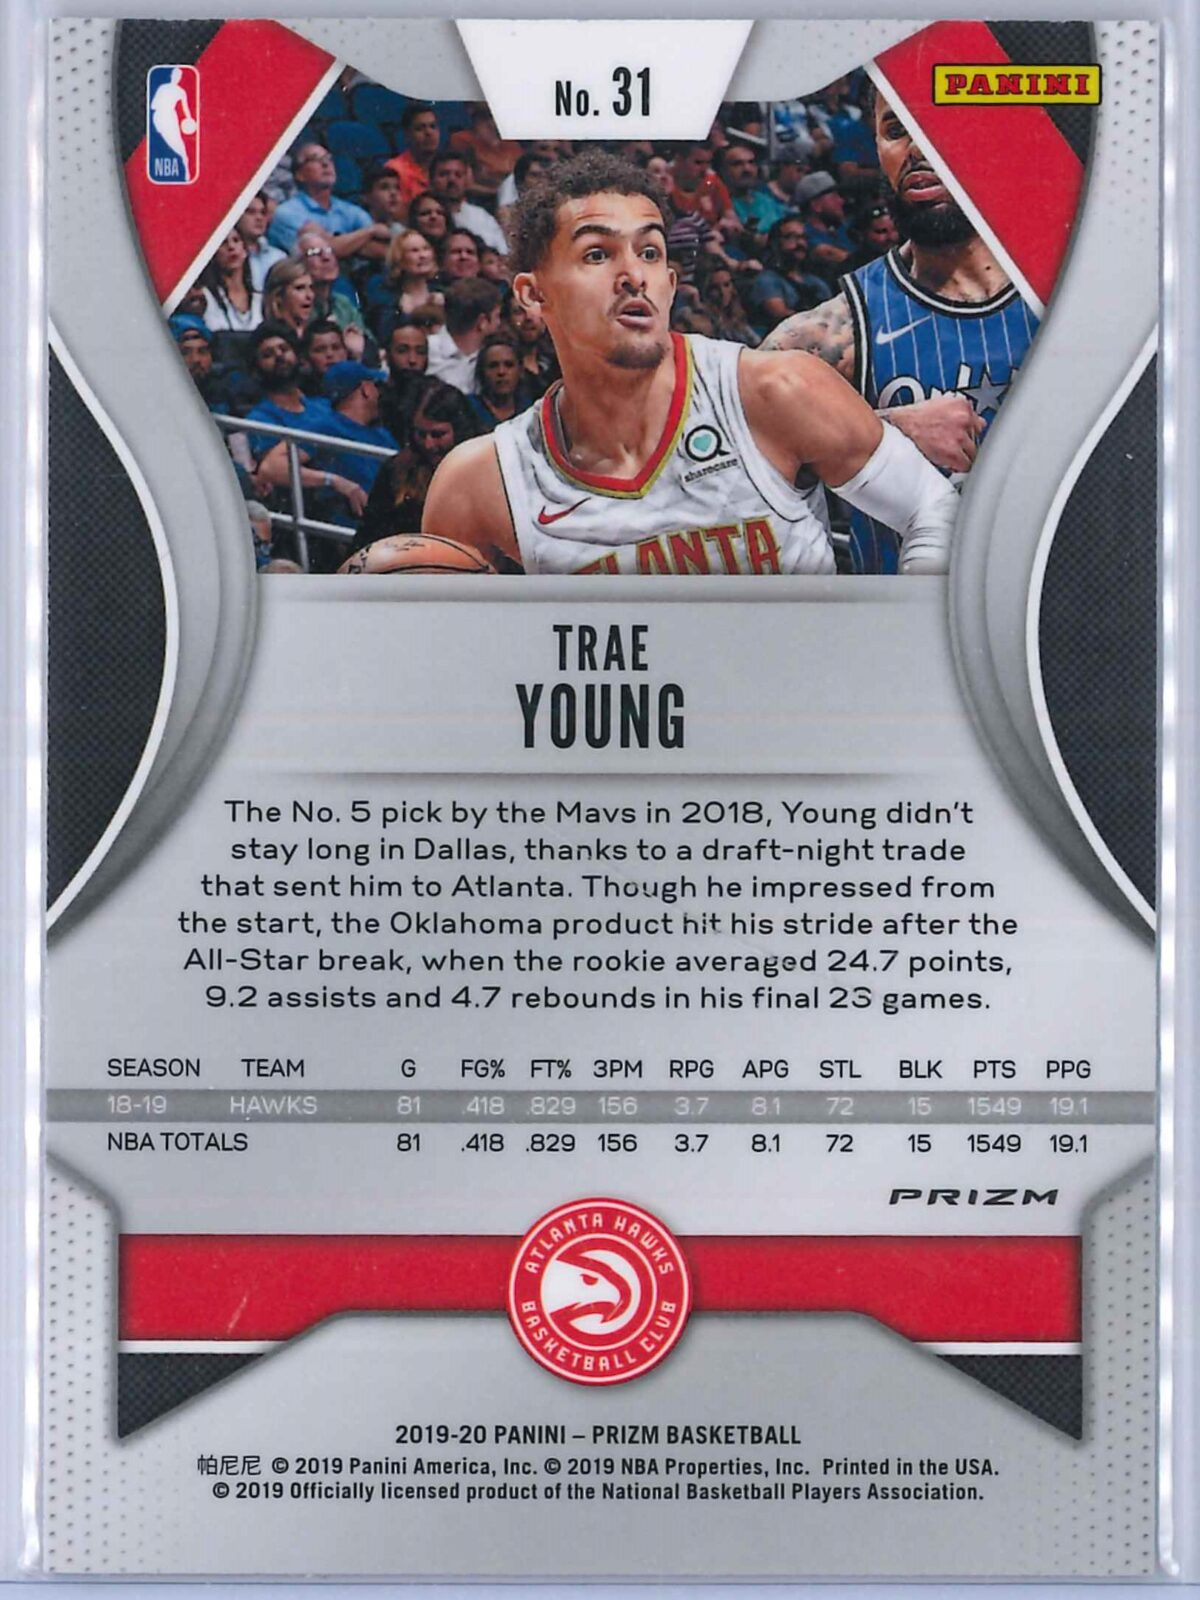 Trae Young (2) Panini Prizm 2019-20 Base 2nd Year Red White Blue